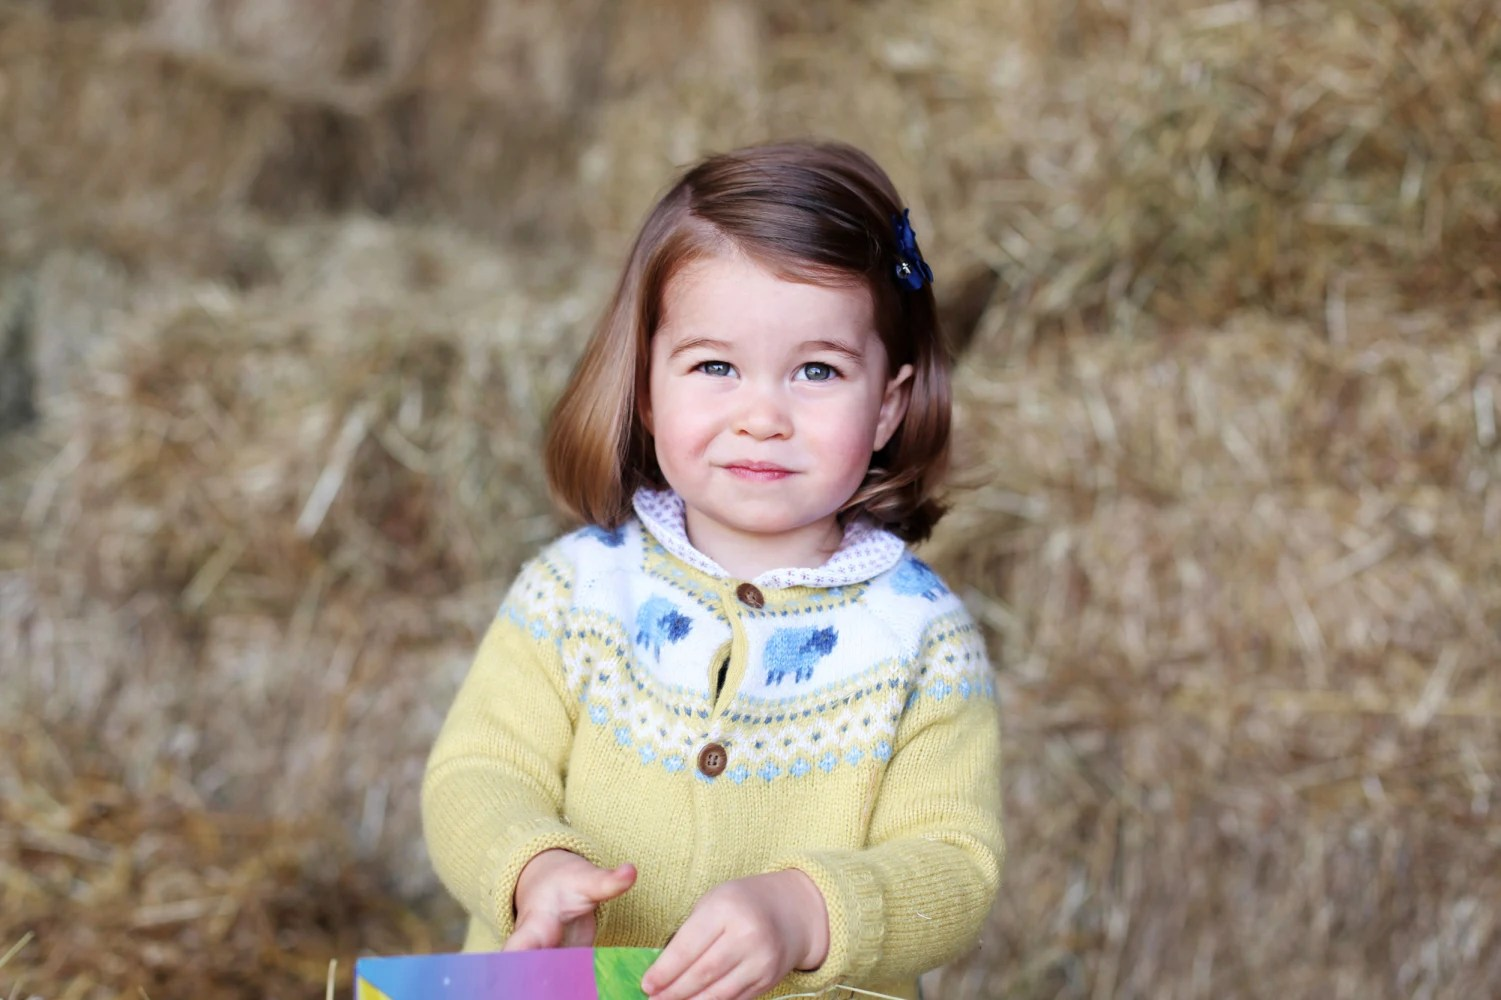 New photo of Princess Charlotte released in honor of 2nd birthday